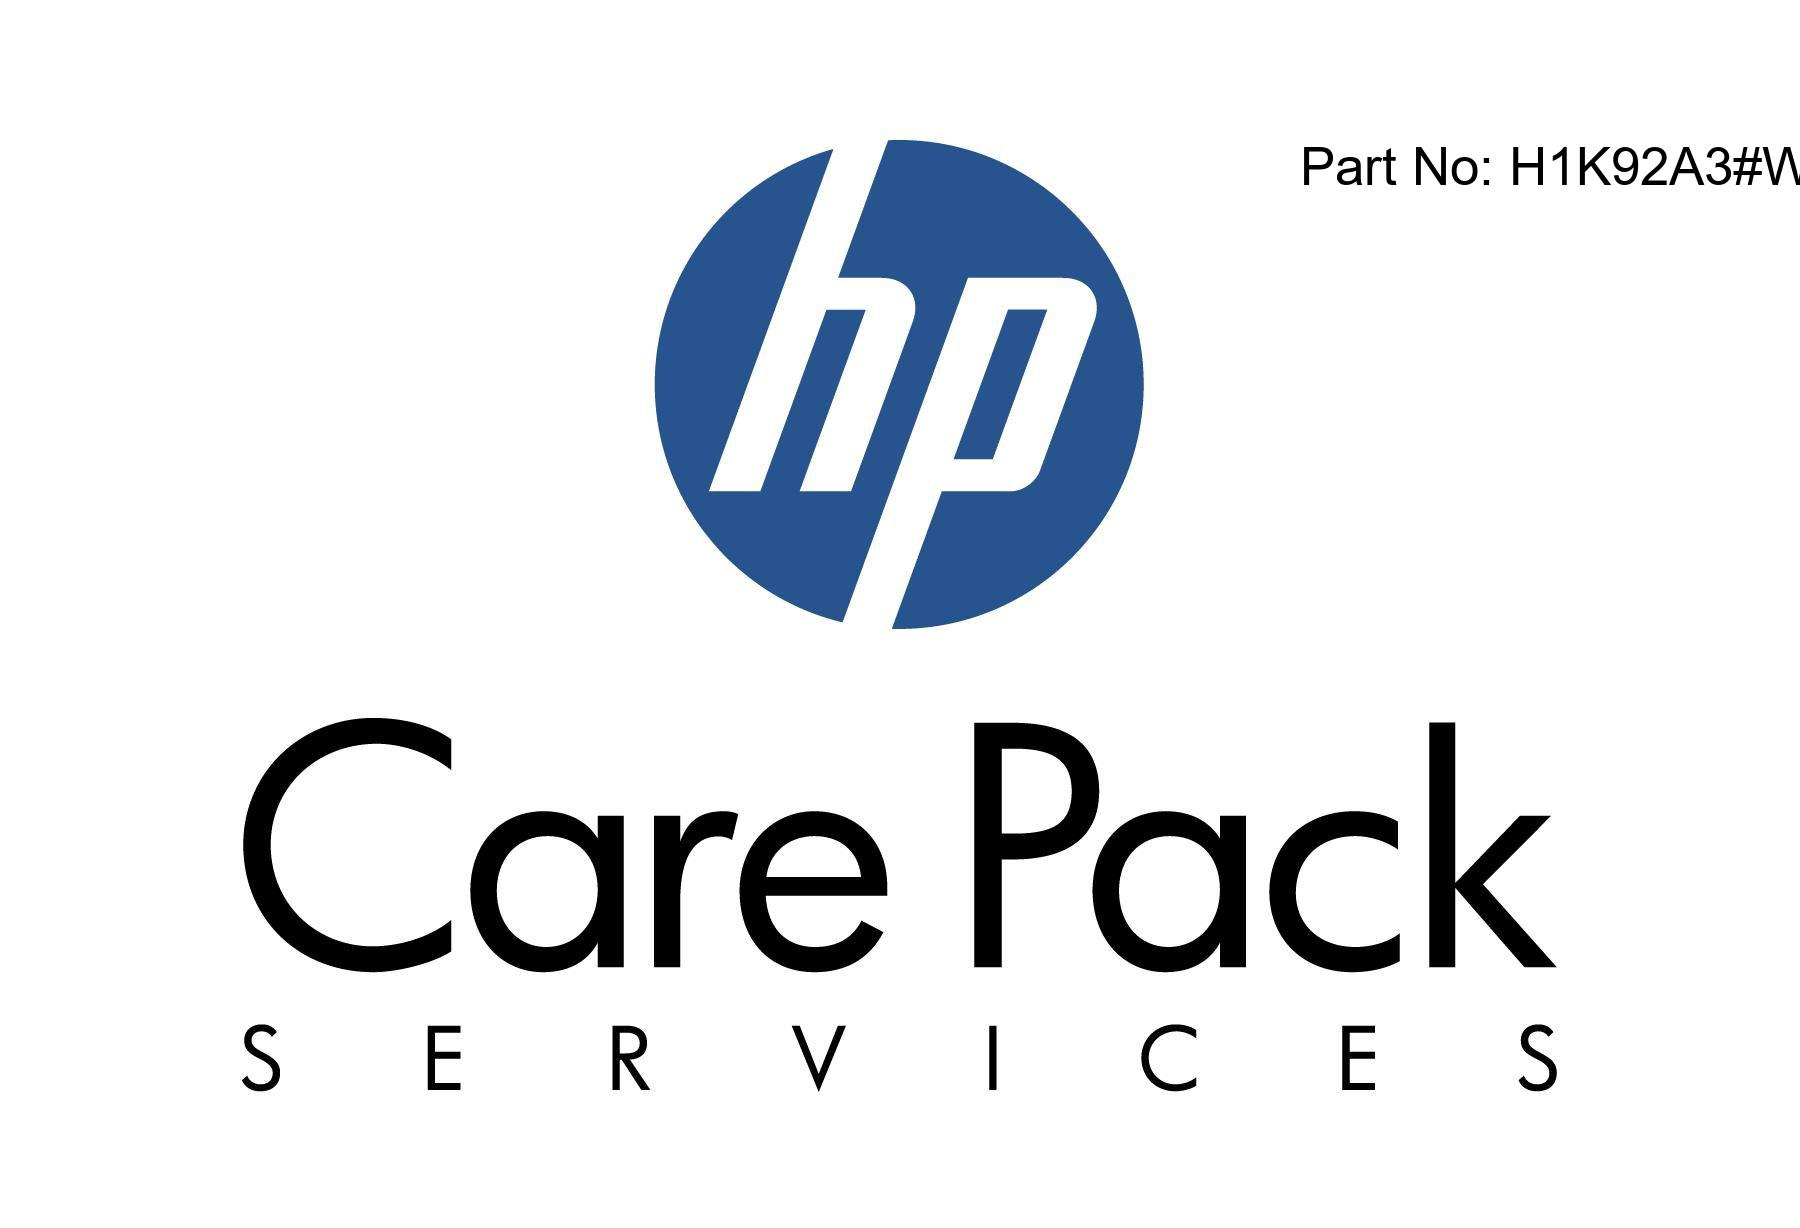 Proactive Care 24x7 Service - Extended service agreement - parts and labor - 3 years - on-site - 24x7 - response time: 4 h - for P/N: K2Q35B K2Q36B K2Q37B